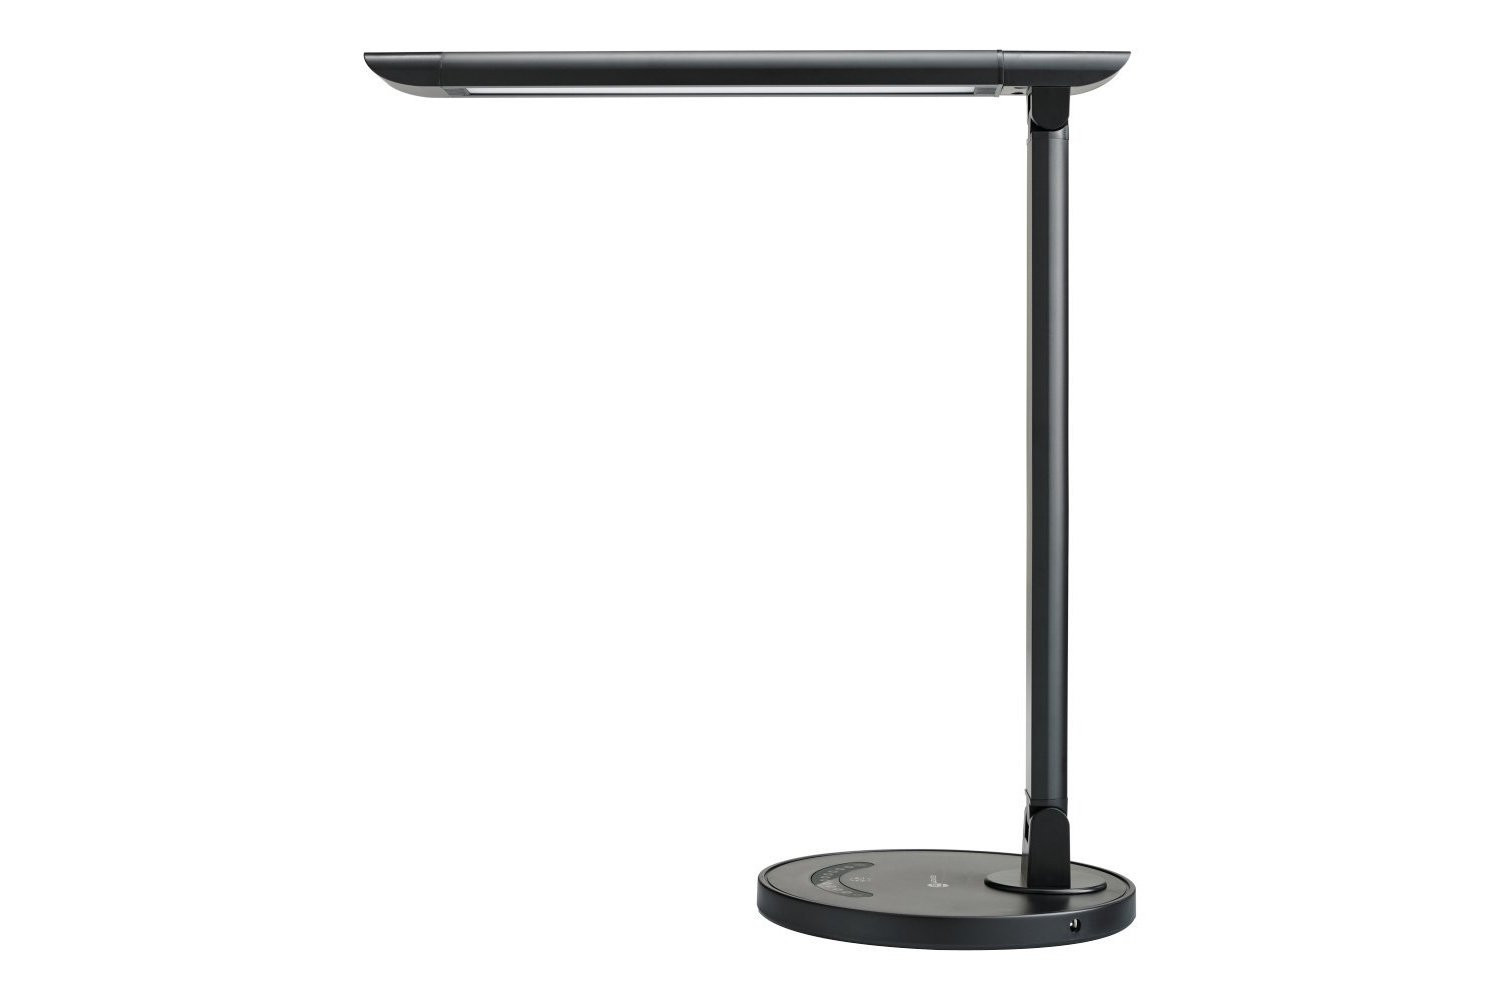 Best ideas about Taotronics Led Desk Lamp . Save or Pin 15 Best Gad s That Every Student Needs Now.